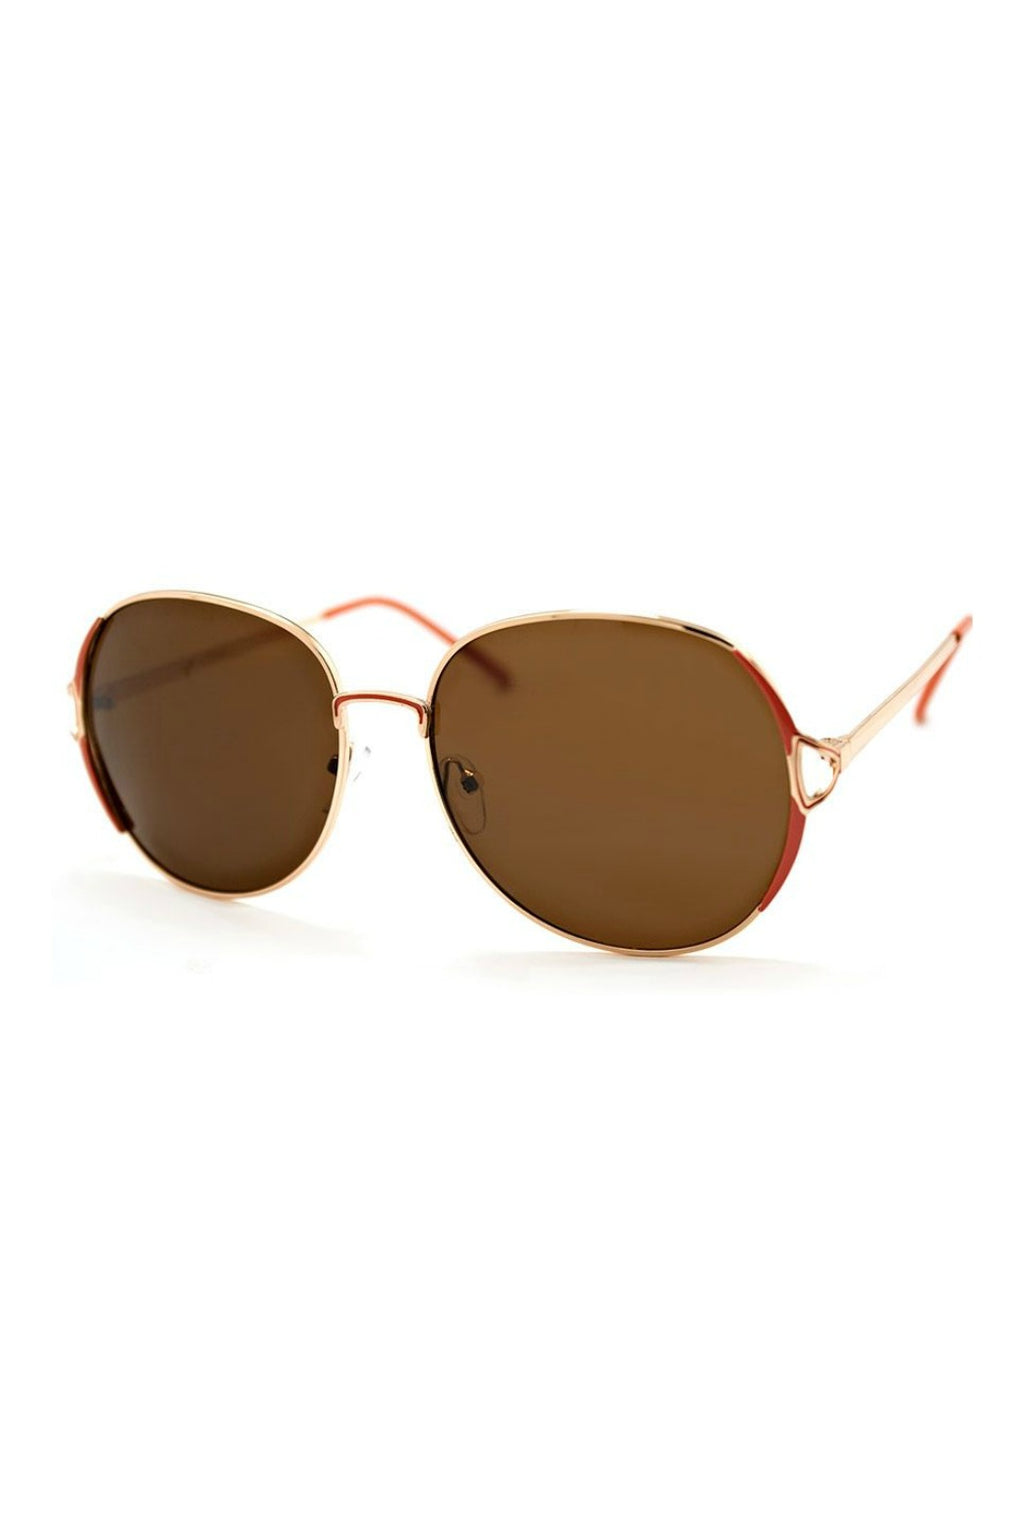 Fountain Sunnies - Coral Pink